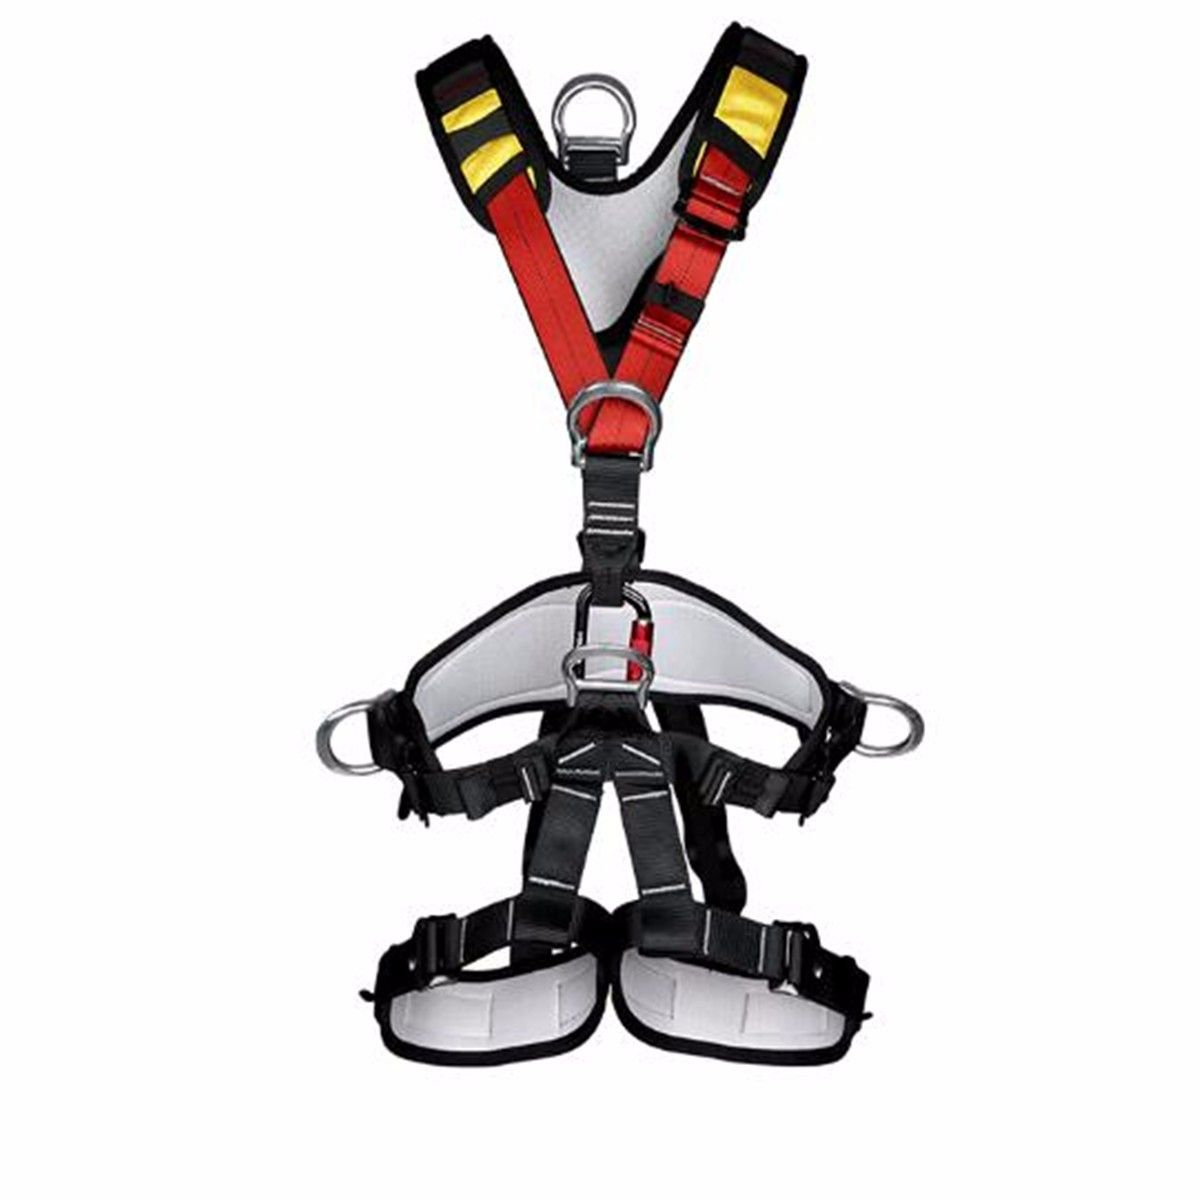 Buy Outdoor Rock Climbing Rappelling Mountaineering Full Body Safety Harness Wearing Seat Belt